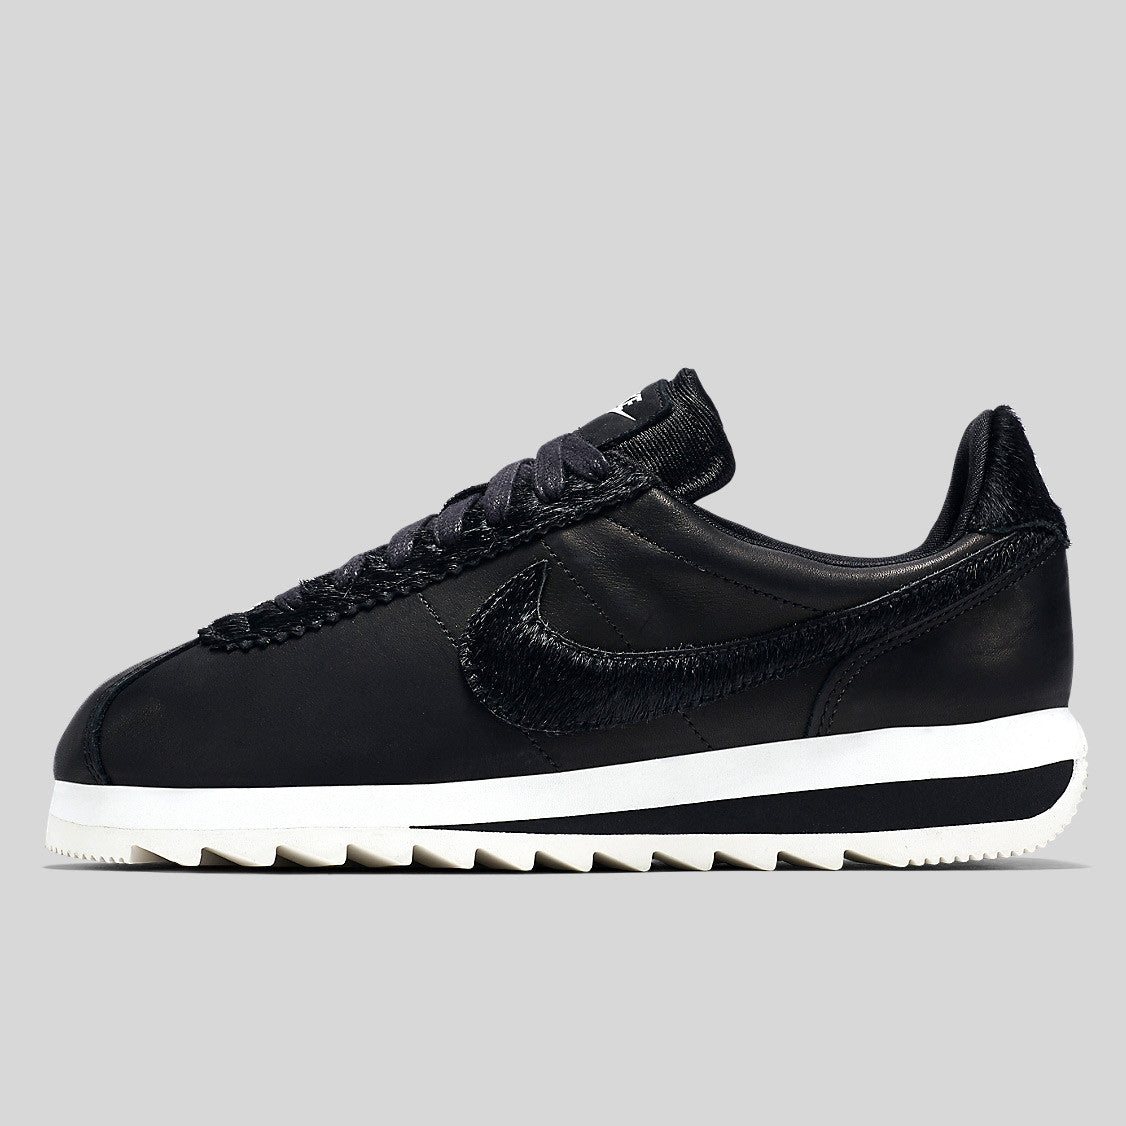 sports shoes 812d1 a6b20 Nike Wmns Classic Cortez Epic PH QS Black Summit White (884887-001)   KIX-FILES